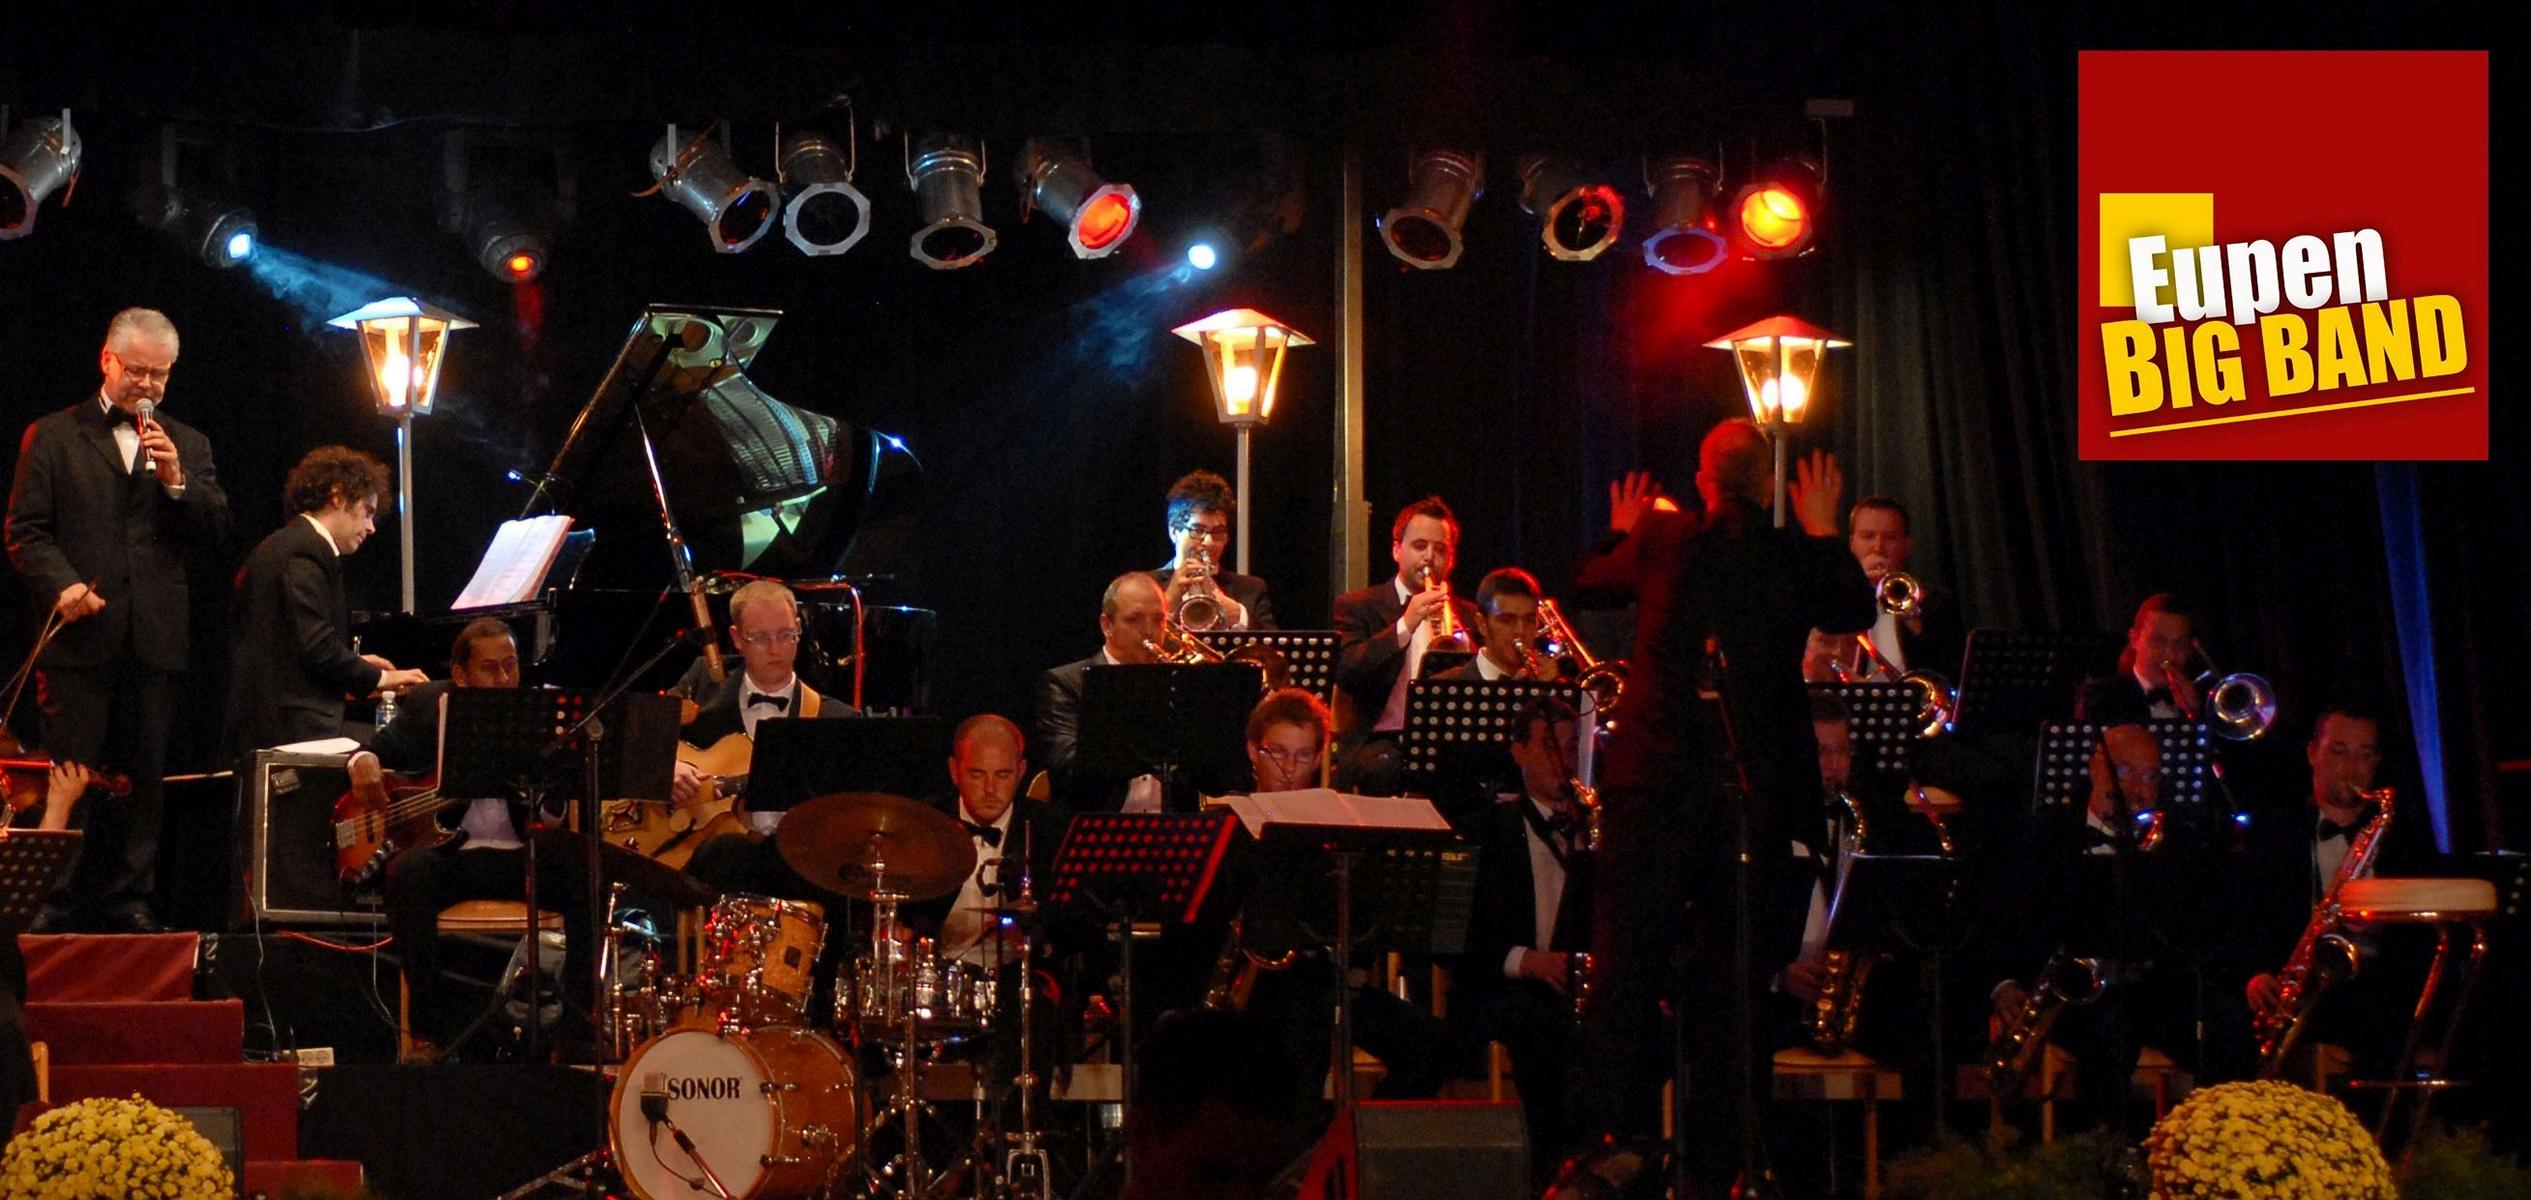 EUPEN BIG BAND & MSF BIG BAND Swinging Christmas